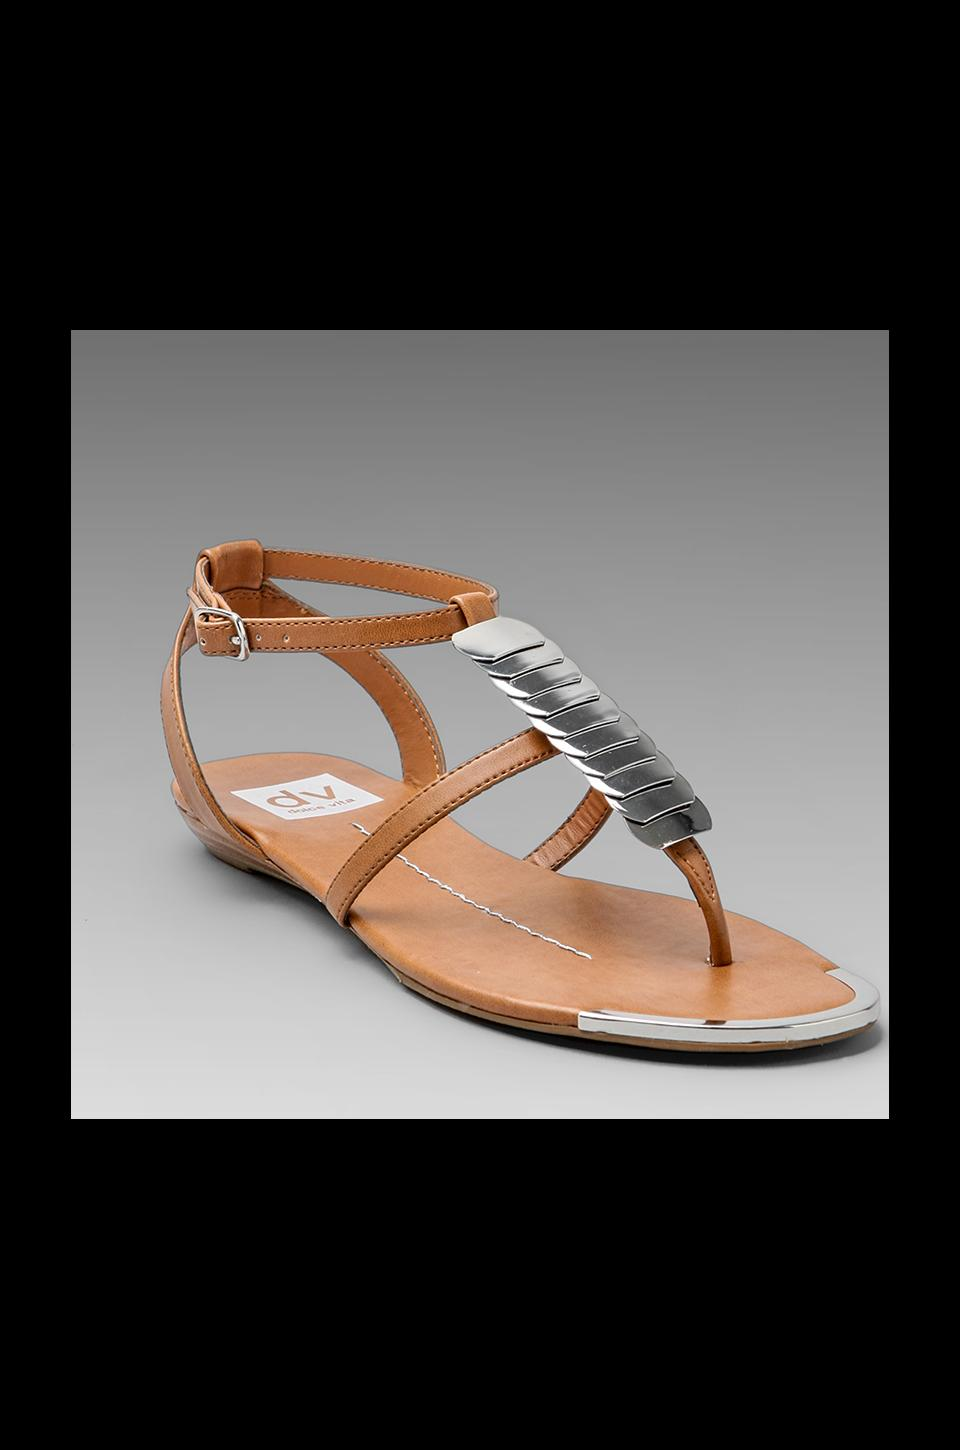 Dolce Vita Apex Sandal in Light Cognac